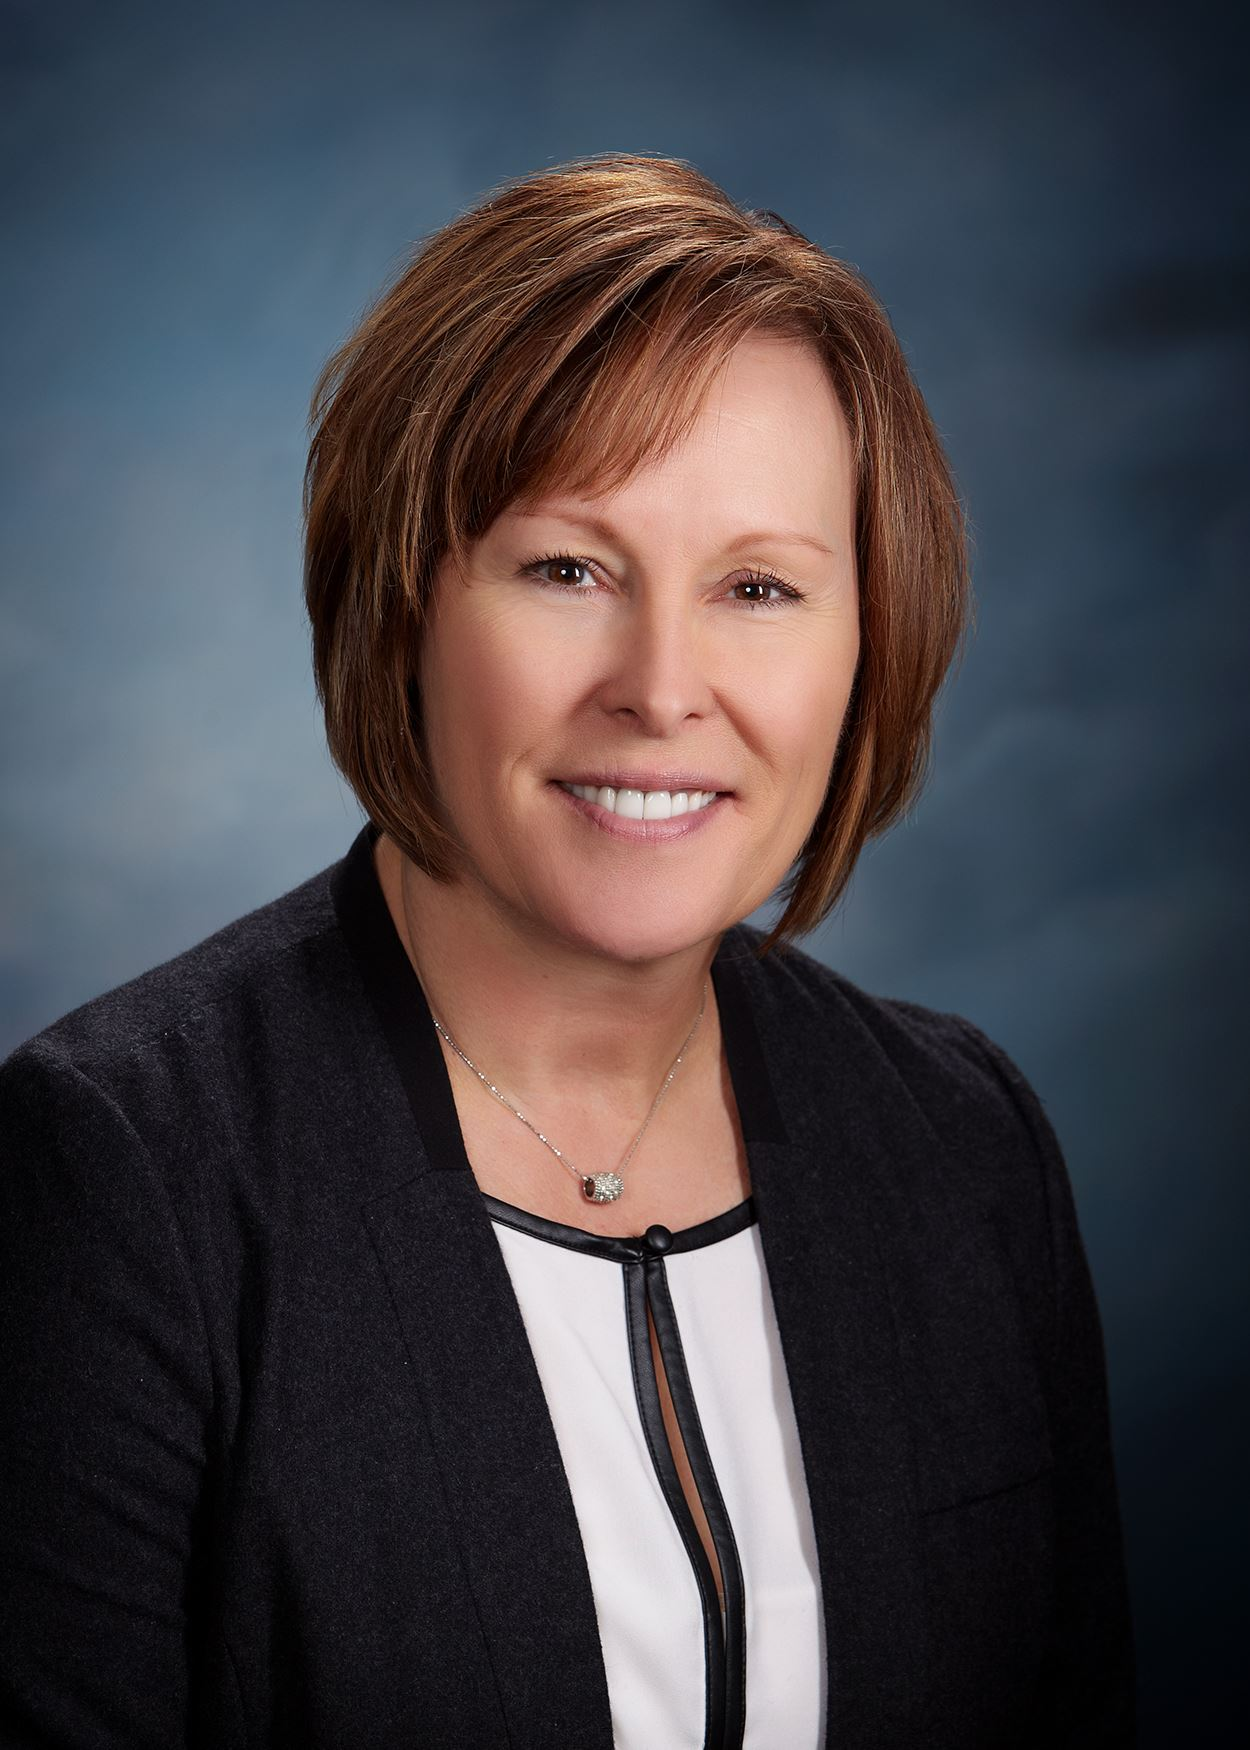 Photo of Carrie Svendsen, Human Resources Manager